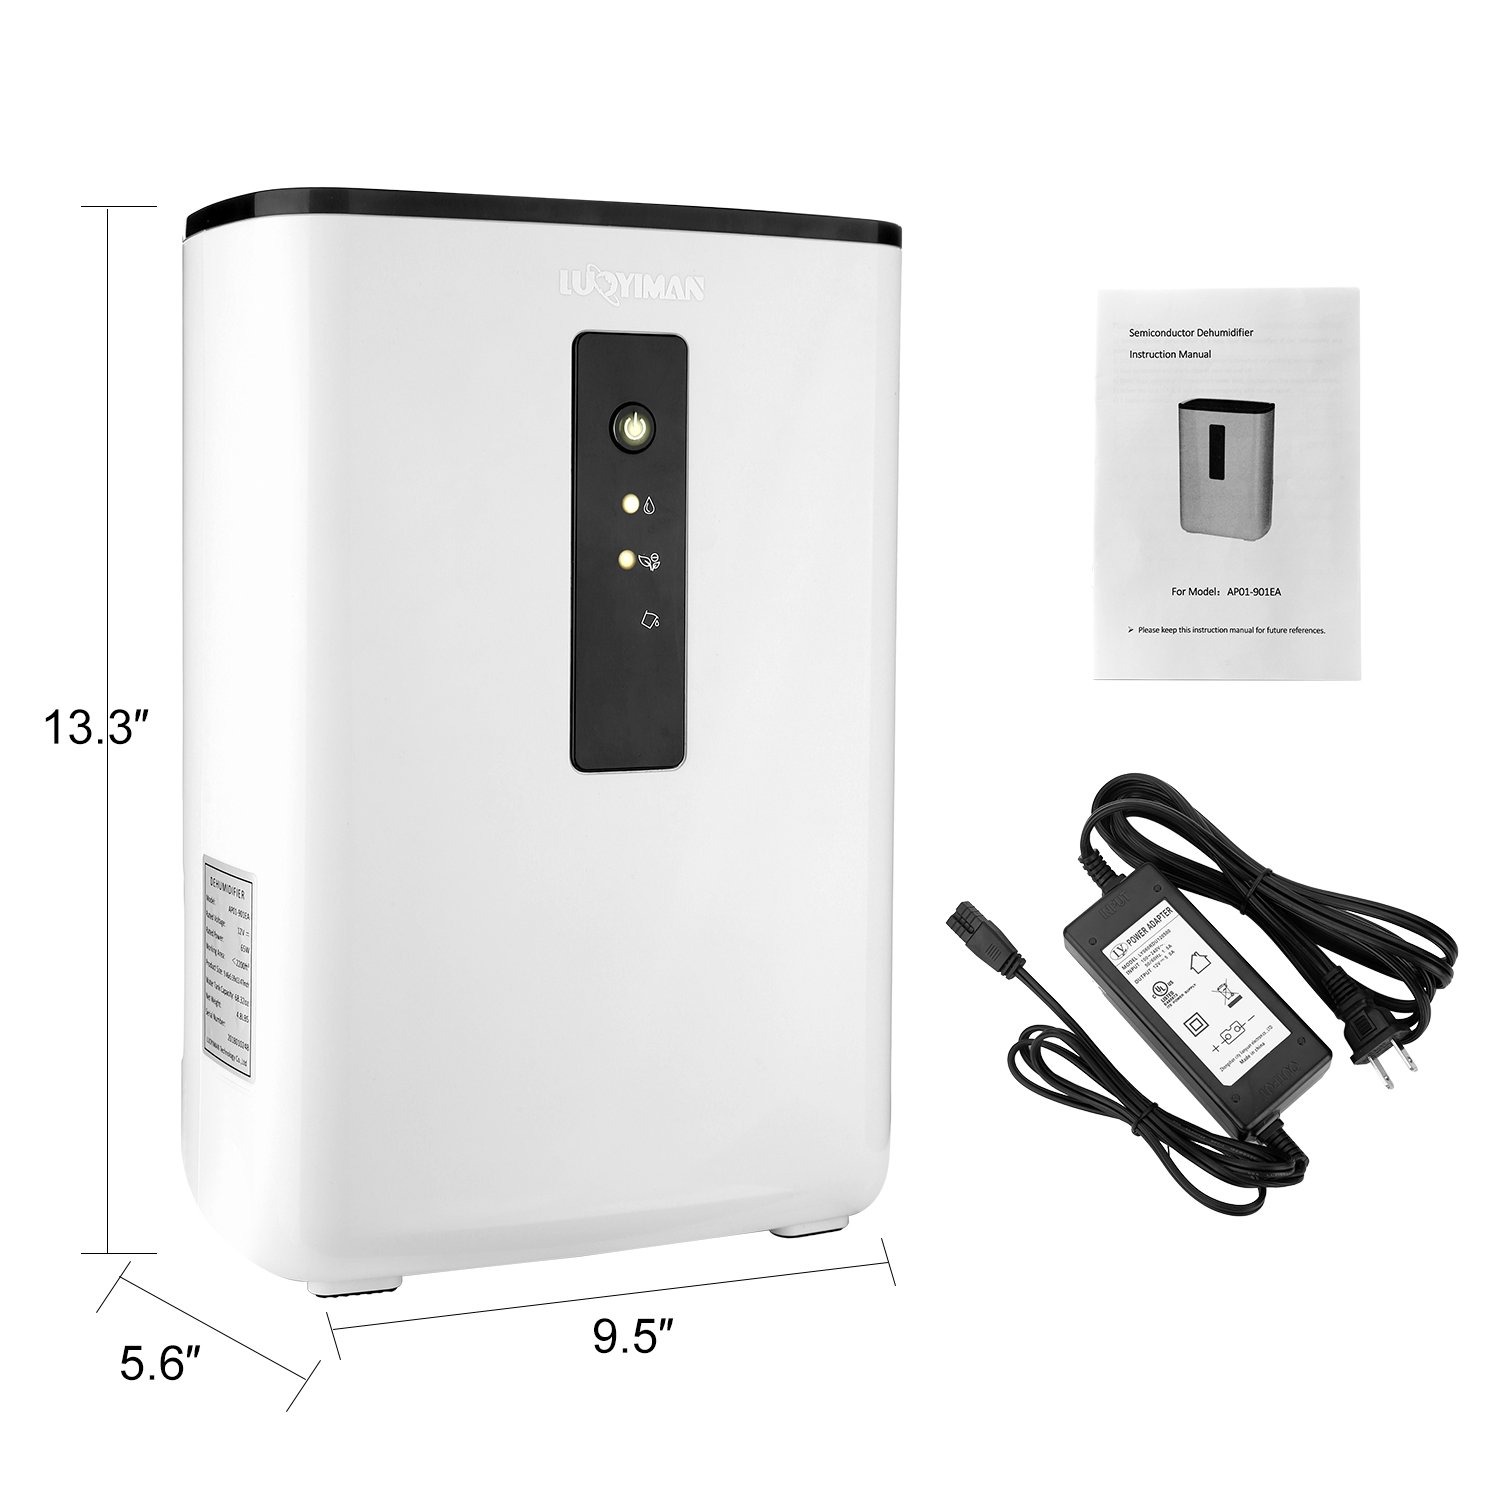 LUOYIMAN Dehumidifier Electric Home Dehumidifier Quiet Operation with UV Sterilization (2.5 Liter) by LUOYIMAN (Image #6)